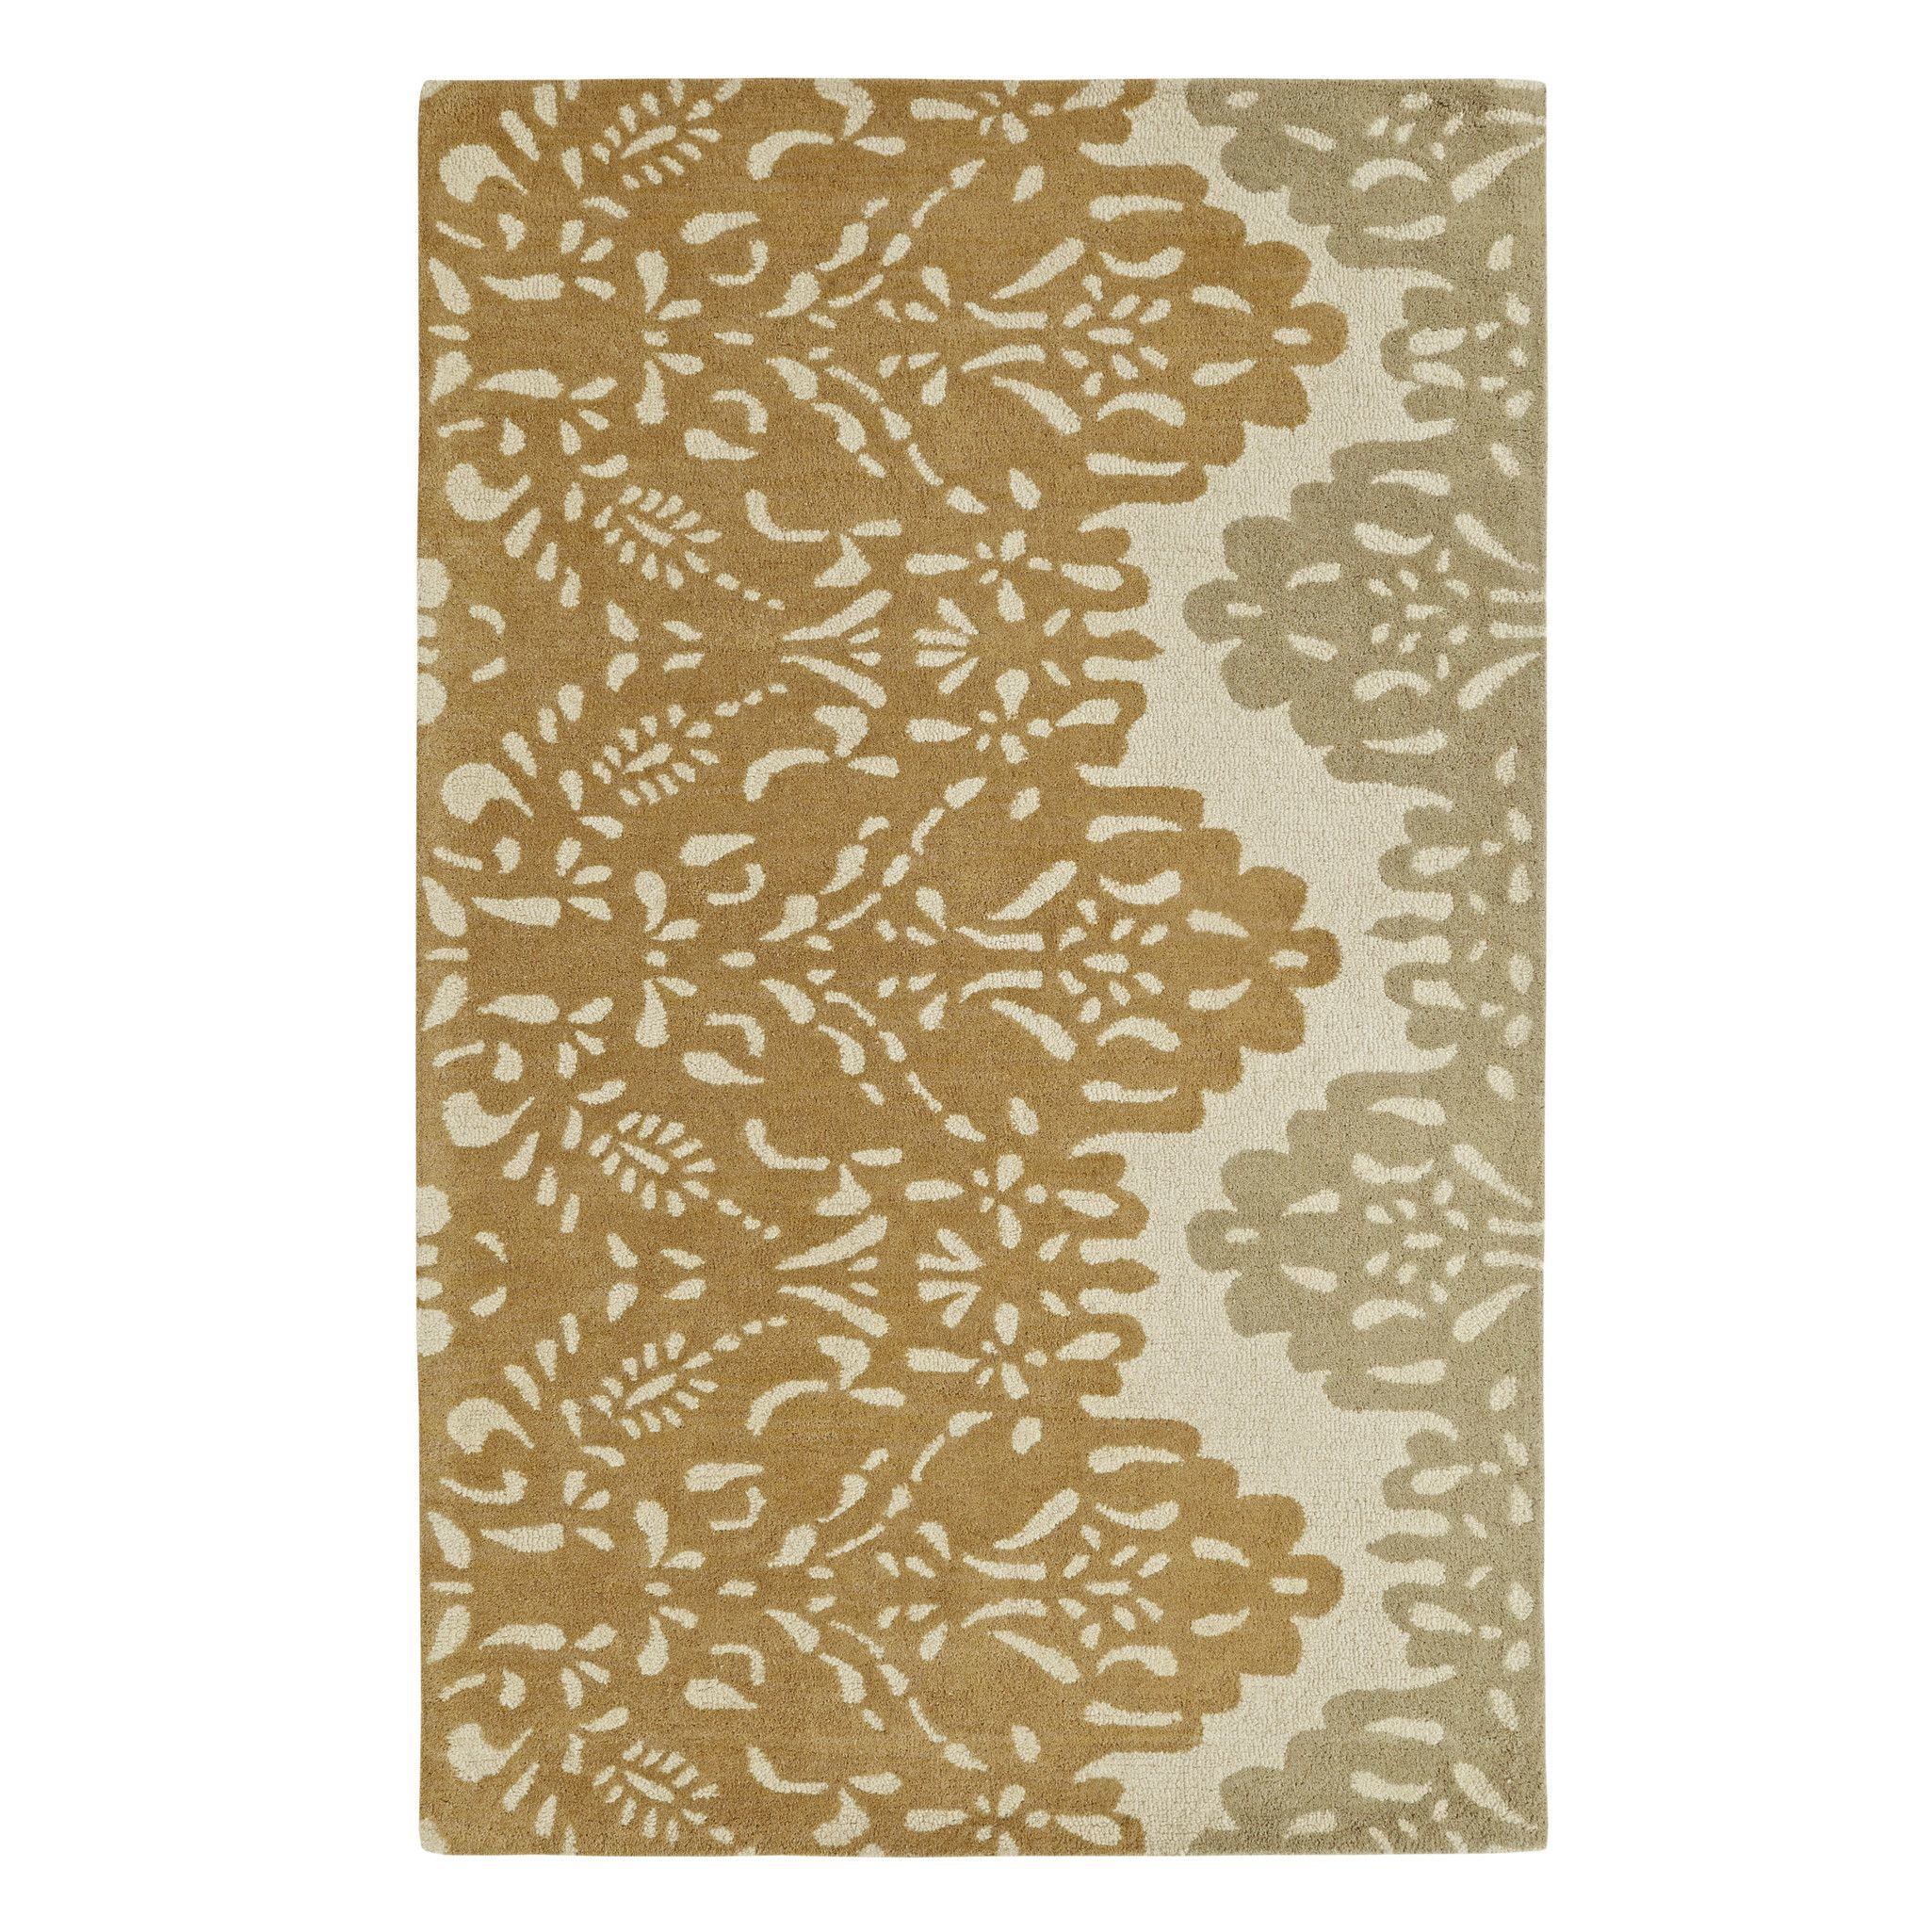 new black and gold bathroom rugs concept-Cool Black and Gold Bathroom Rugs Wallpaper